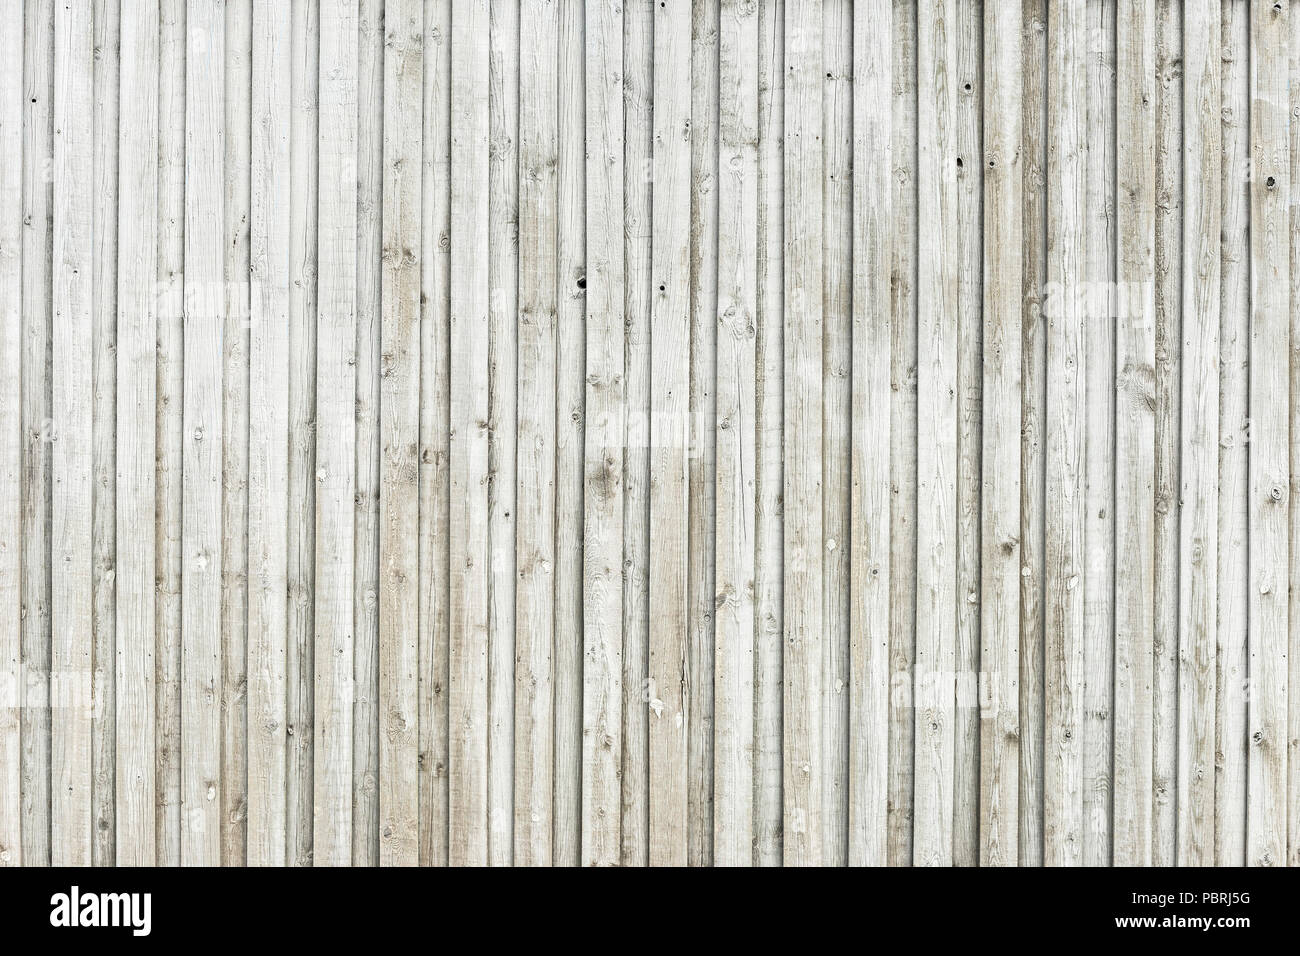 Wooden wall made of horizontally arranged unpainted boards, background image - Stock Image